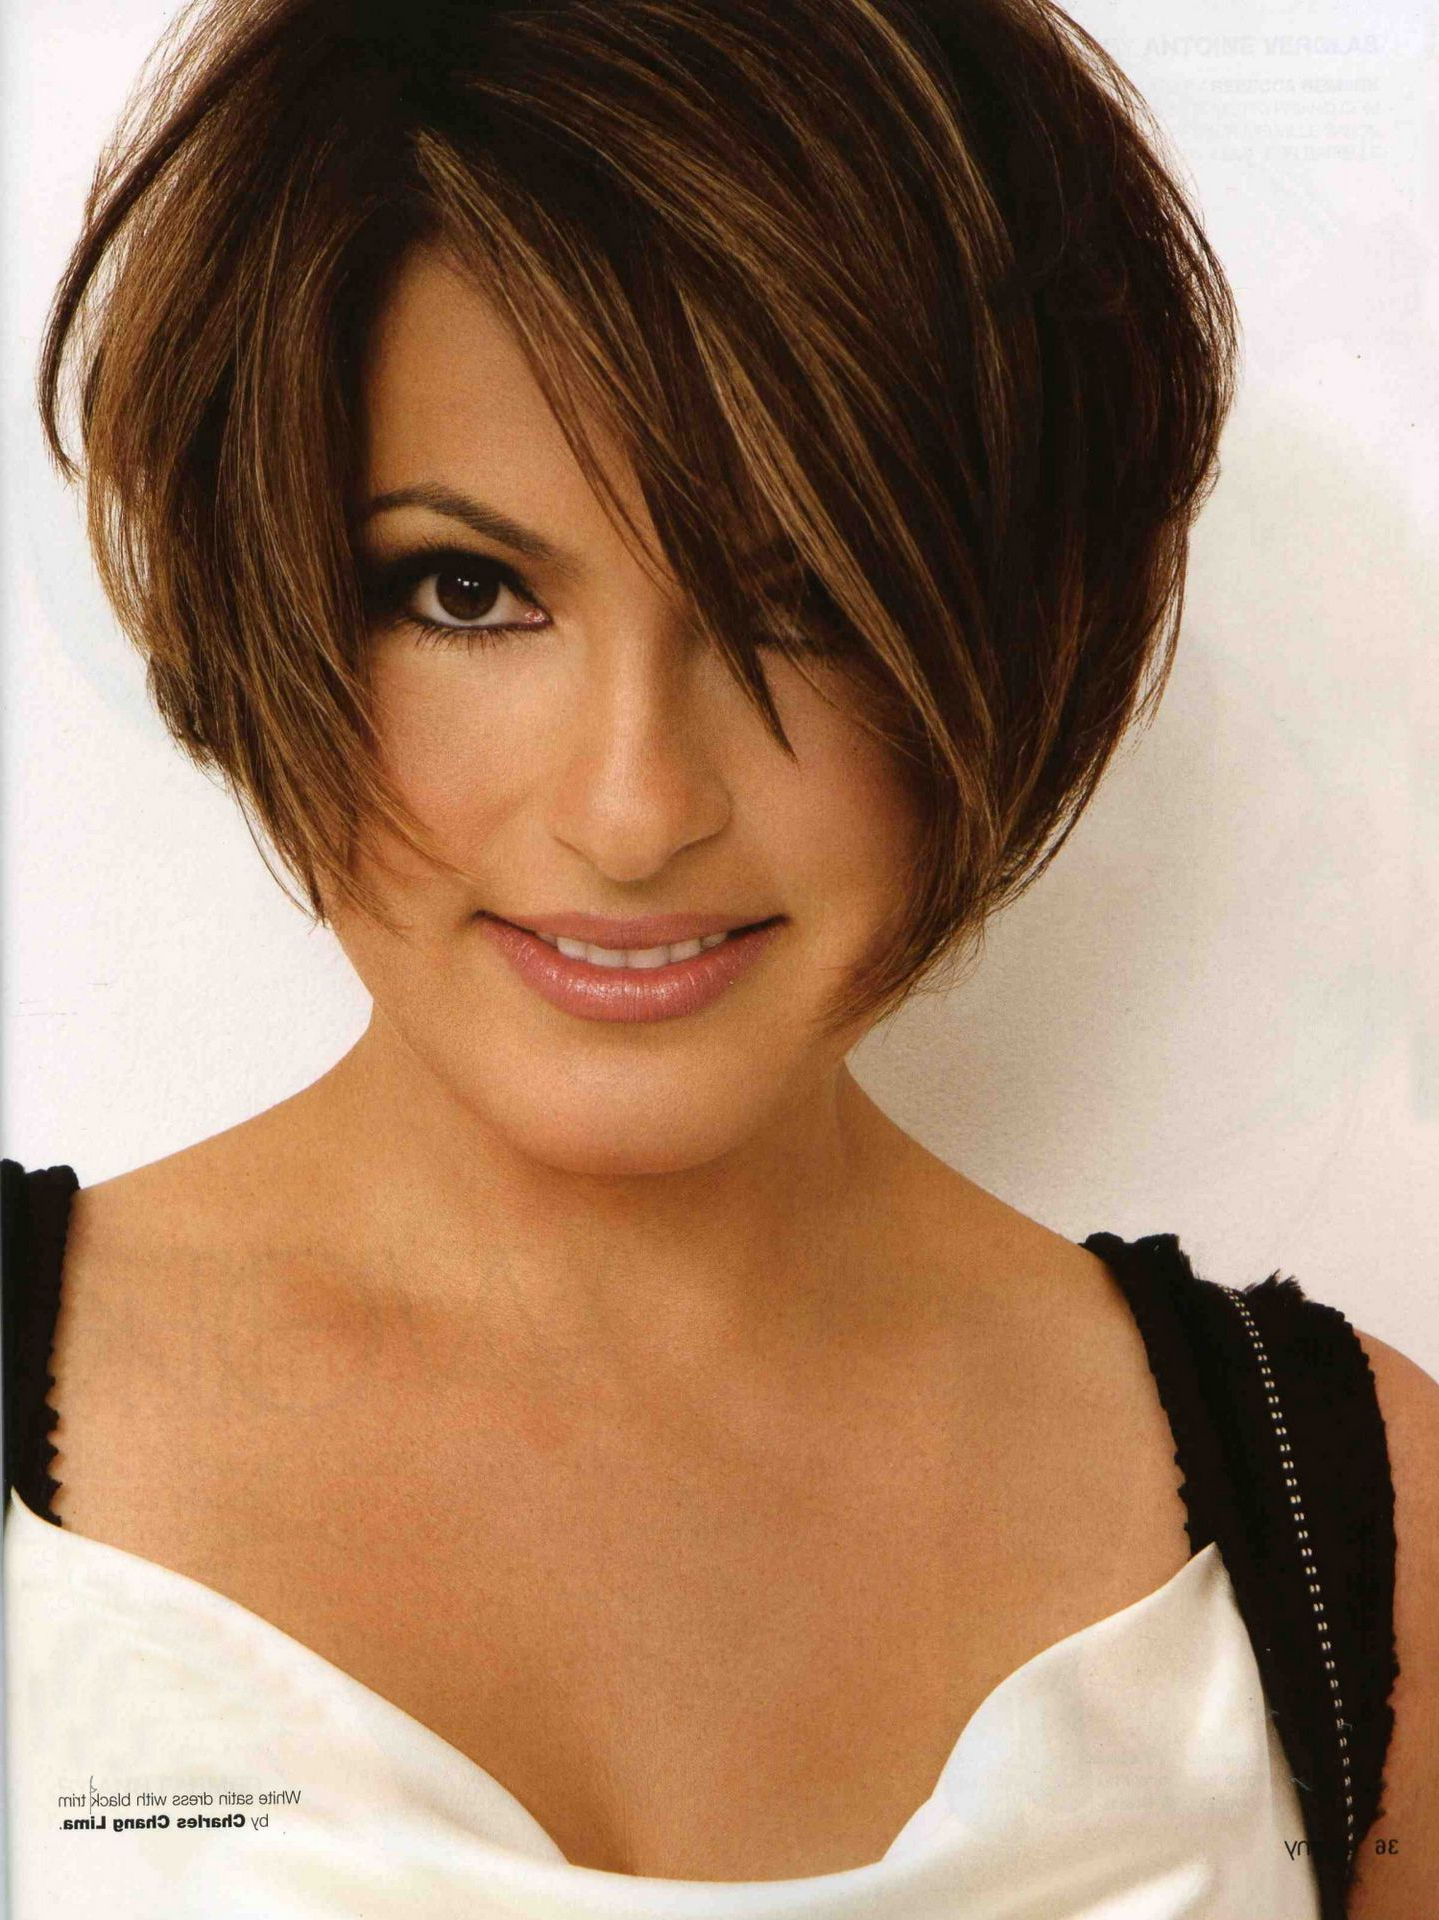 Short Hair Cuts Ideas For Women's   Fall Fashions   Pinterest Inside Summer Hairstyles For Short Hair (View 17 of 25)